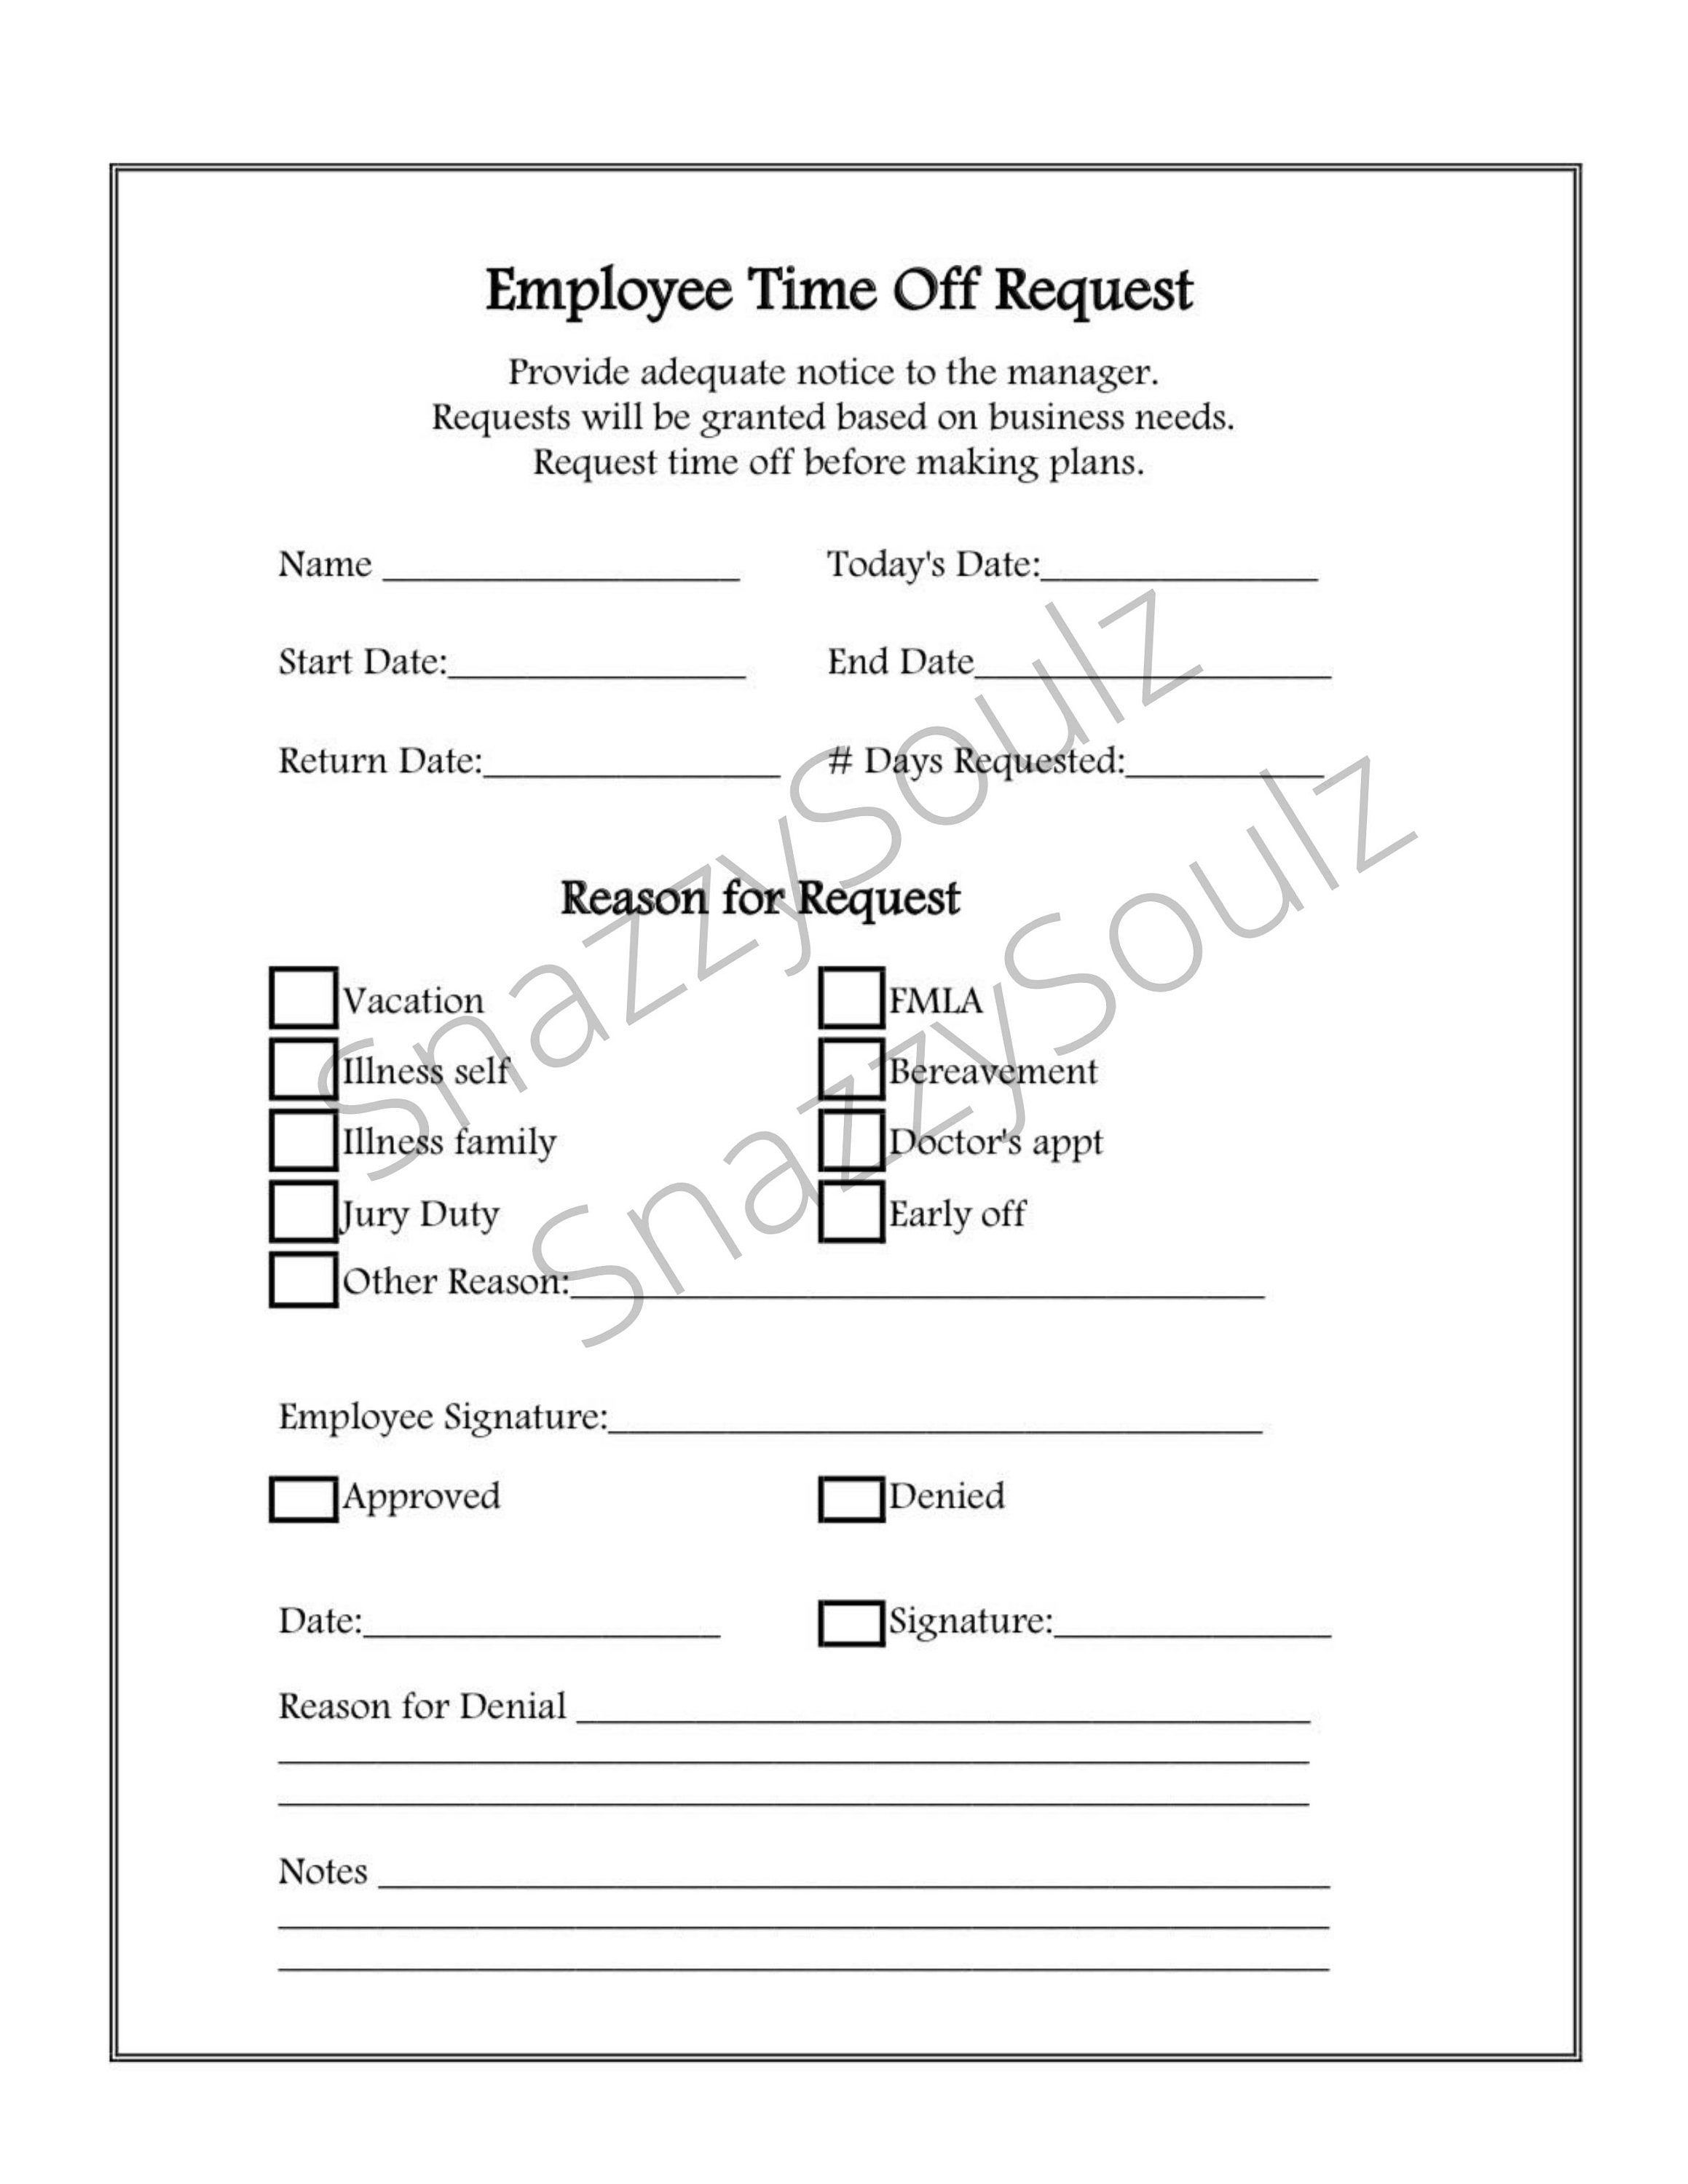 Employee Time Off Request Form Vacation Pto Downloadable And Etsy In 2021 Time Off Request Form Personal Statement Examples Restaurant Management Time off request form template